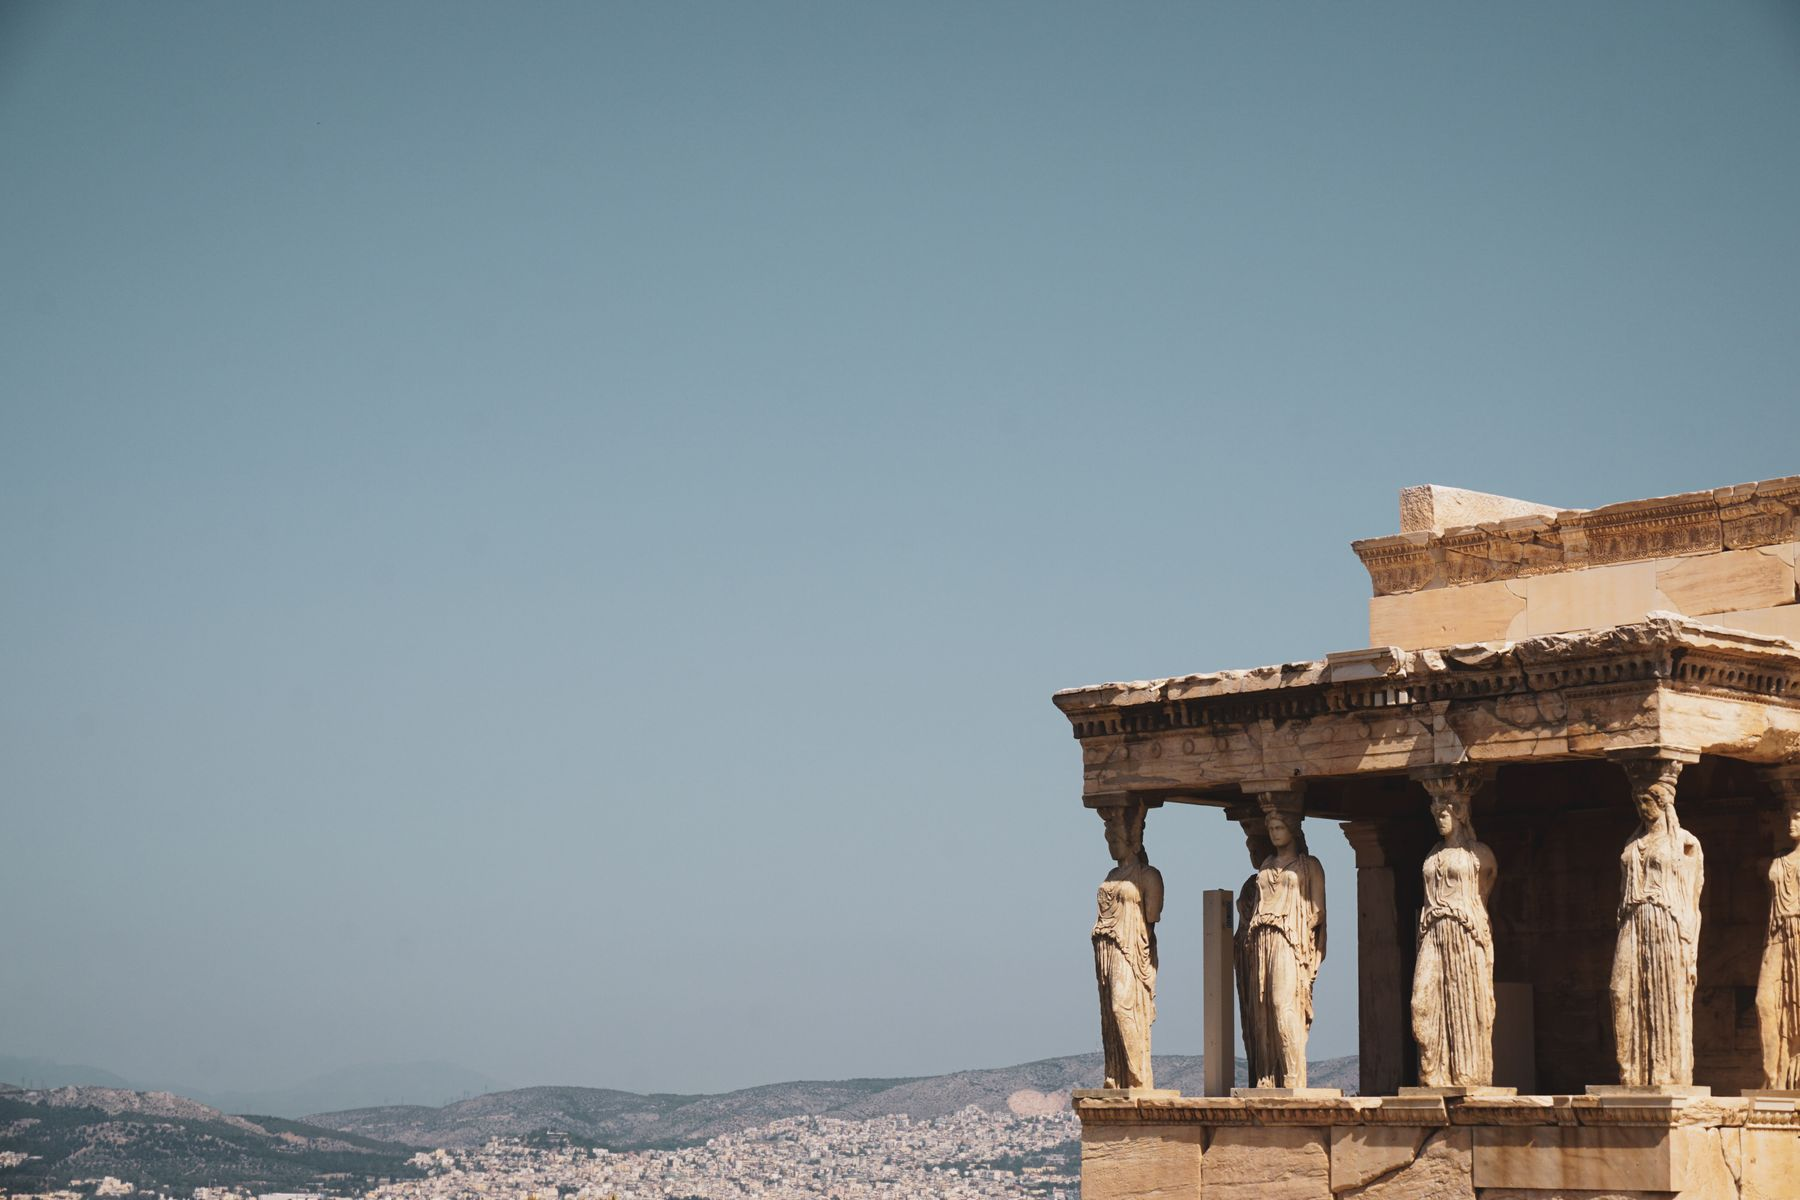 Caryatides at the Acropolis ruins in Athens. Outdoor attractions for your vacation to Greece